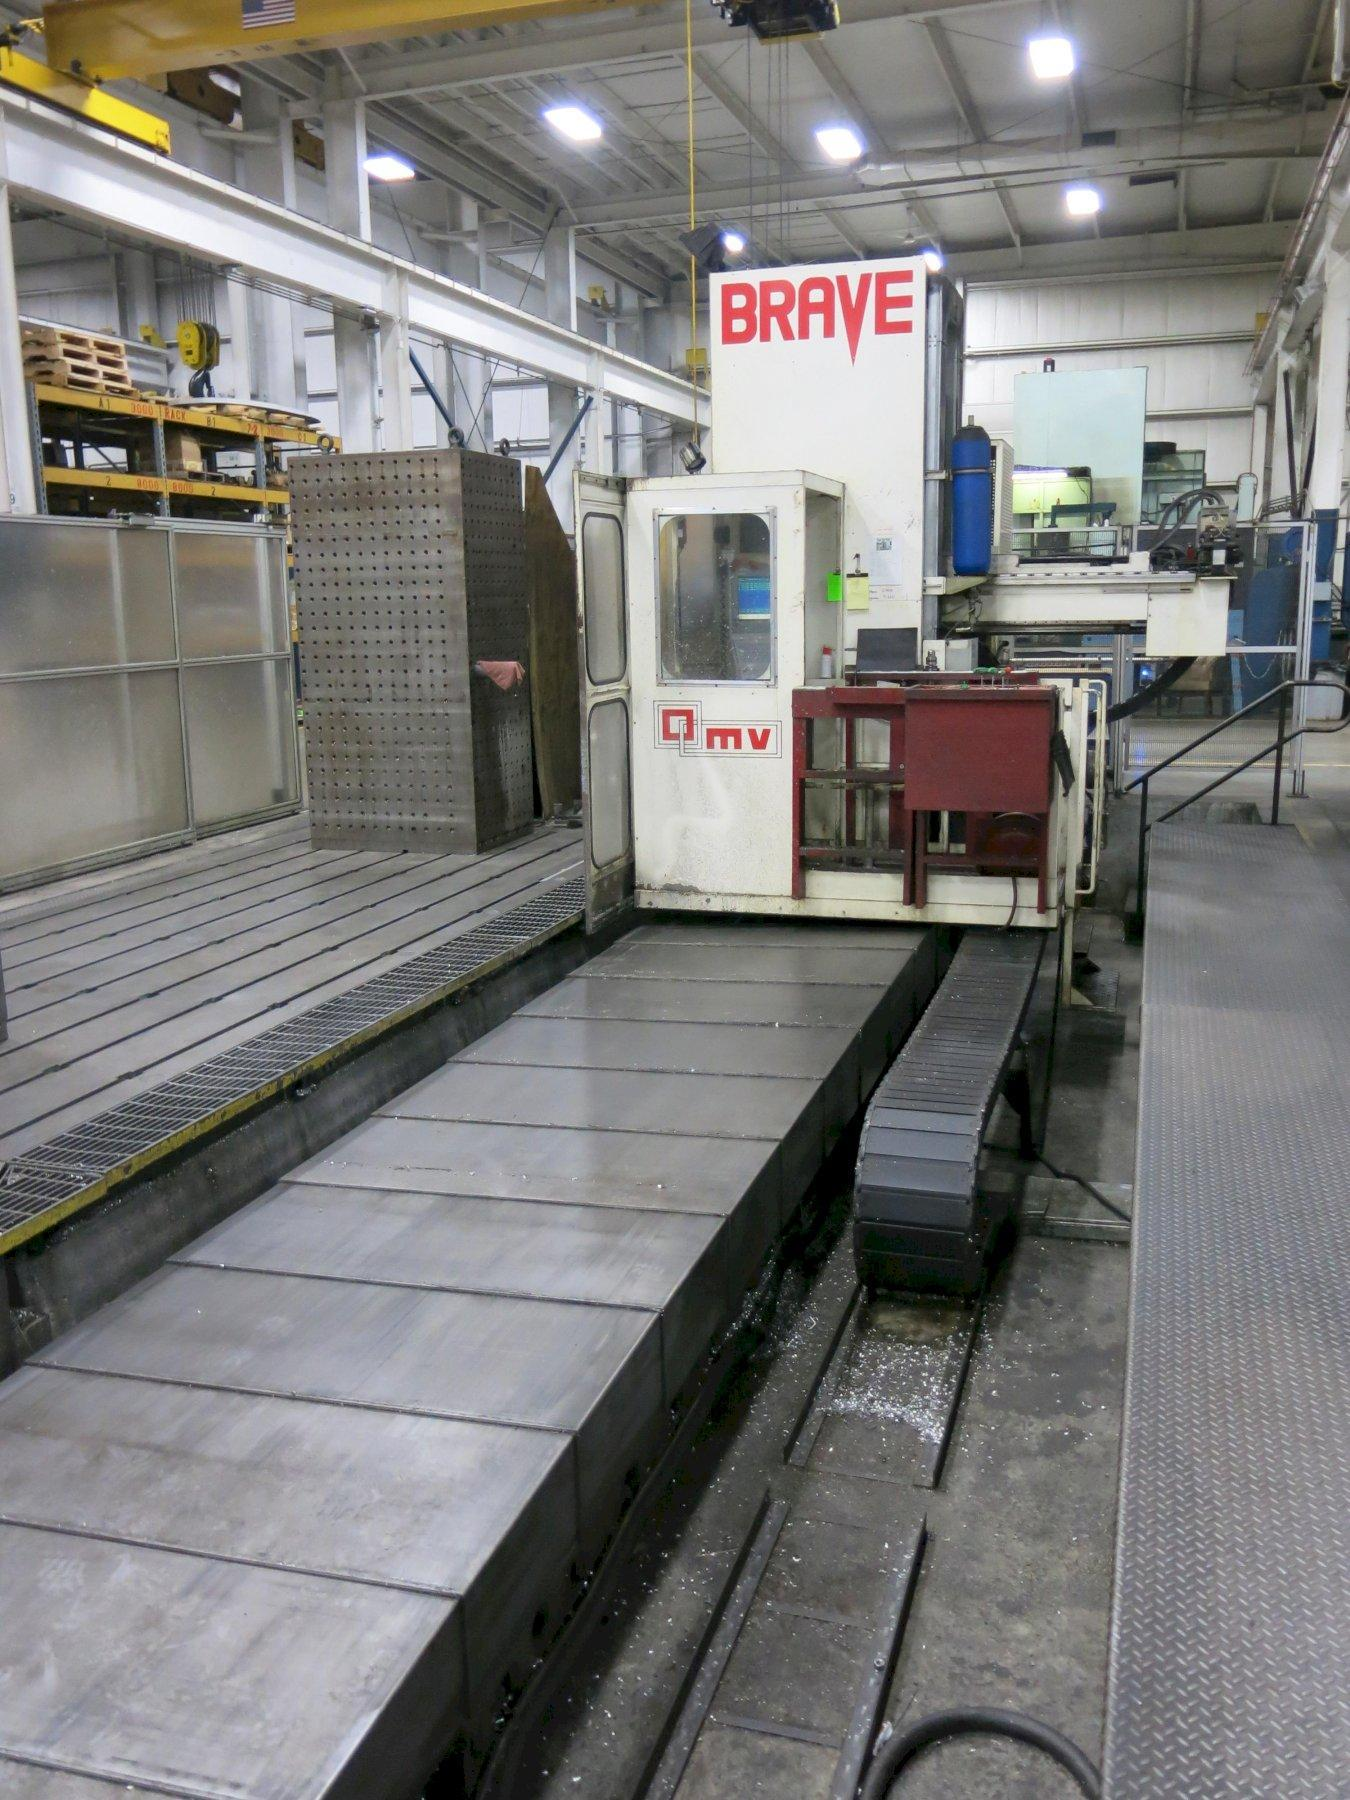 Parpas Brave CNC Boring Mill Floor Type Horizontal, with 5-Axis Head, ATC, New 2006